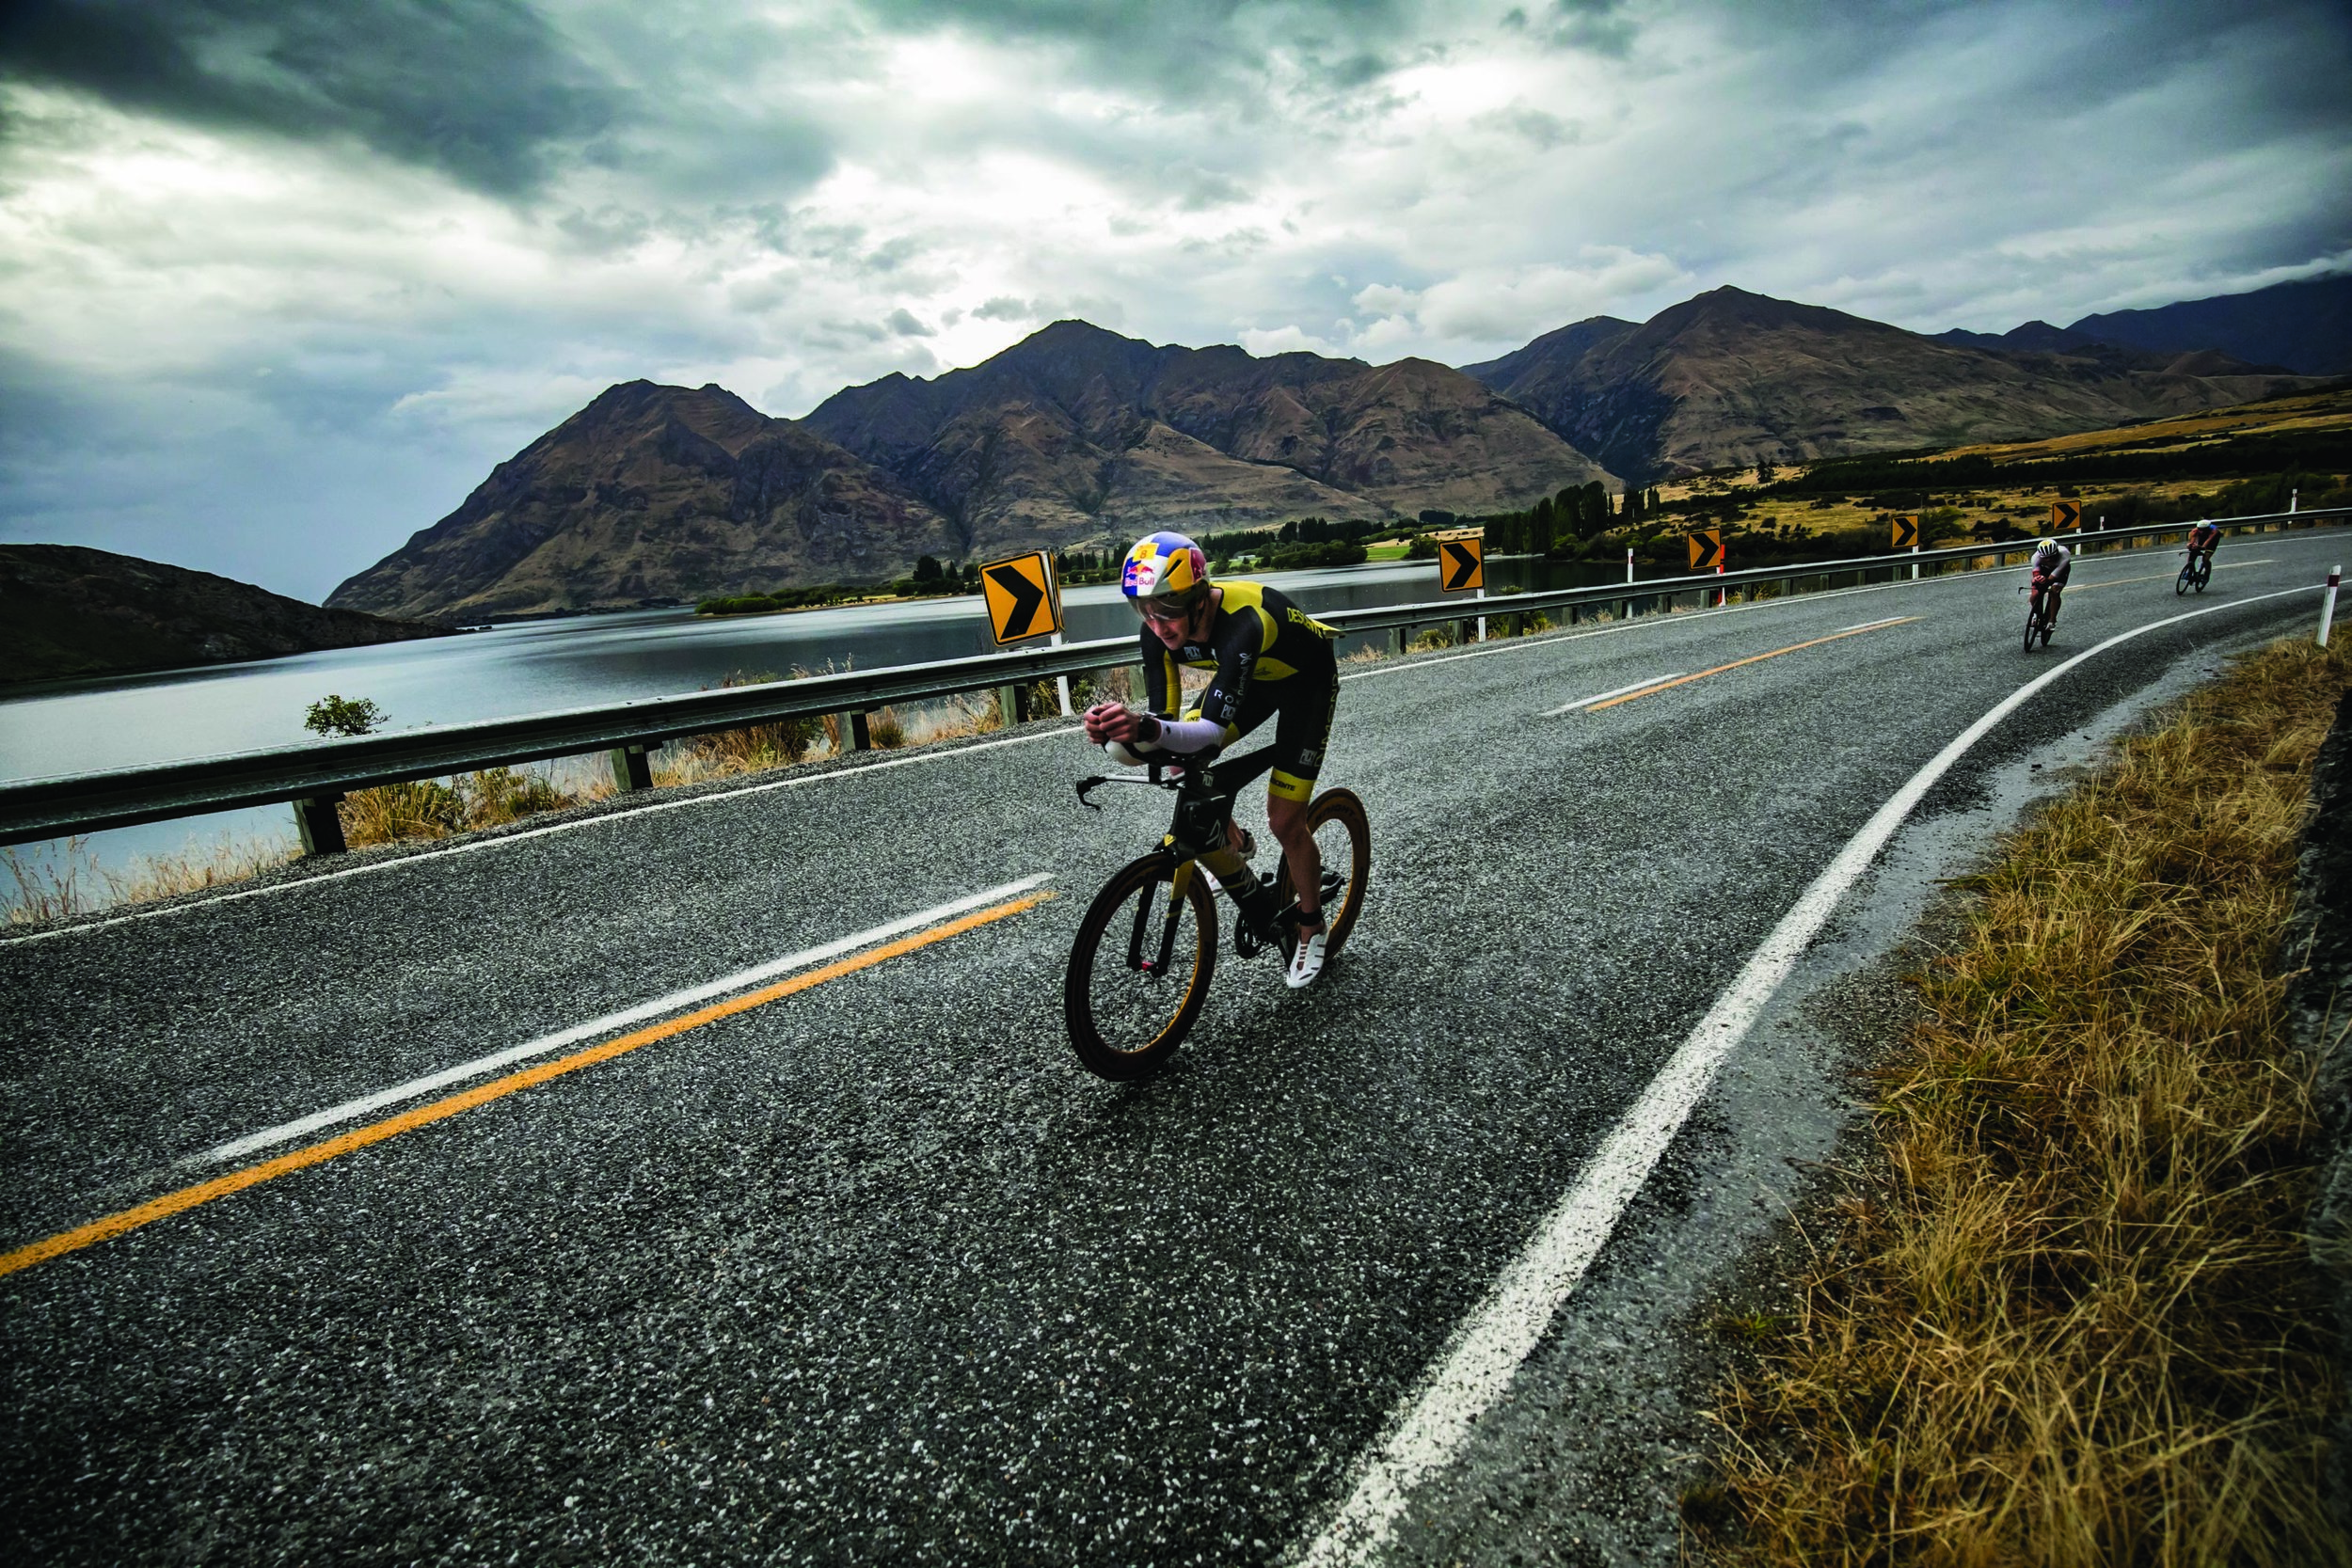 Photo: Challenge Wanaka will once again host the New Zealand National AquaBike Championship in February, that will see competitors swim two laps in the crystal-clear waters of Lake Wanaka and ride two laps of the bike route. Pic: Supplied